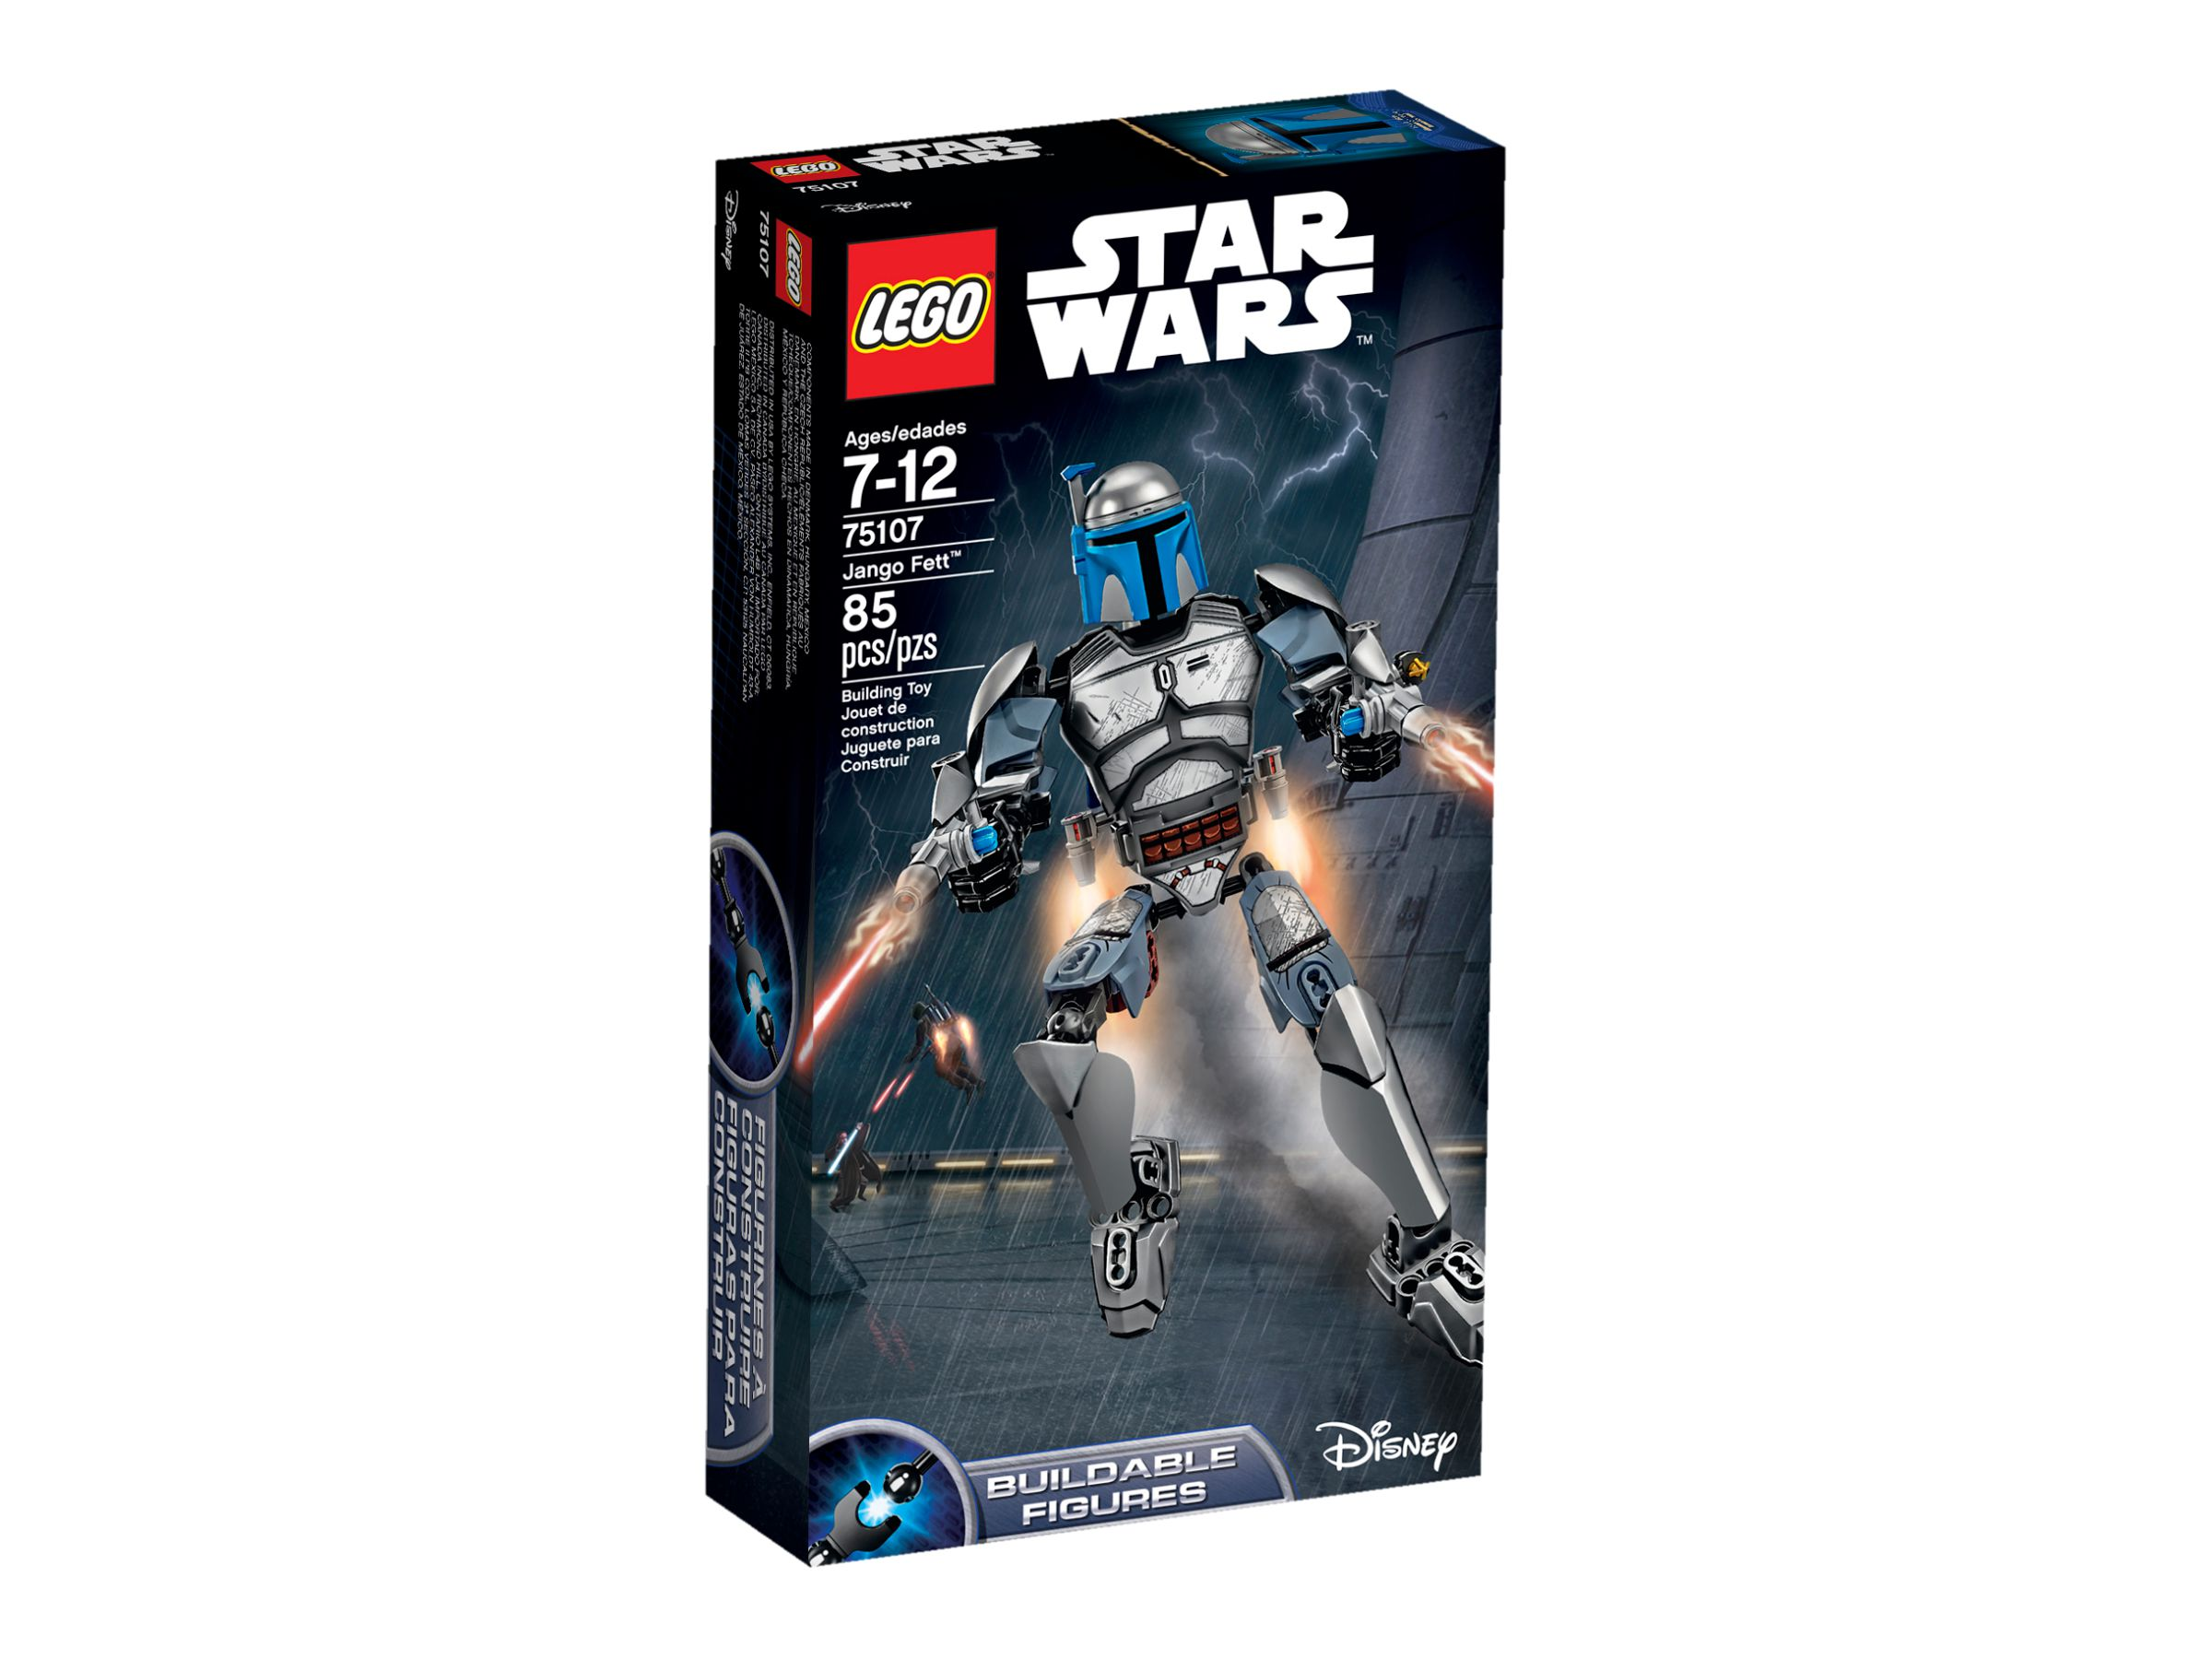 LEGO Star Wars Buildable Figures 75107 Jango Fett™ LEGO_75107_alt1.jpg